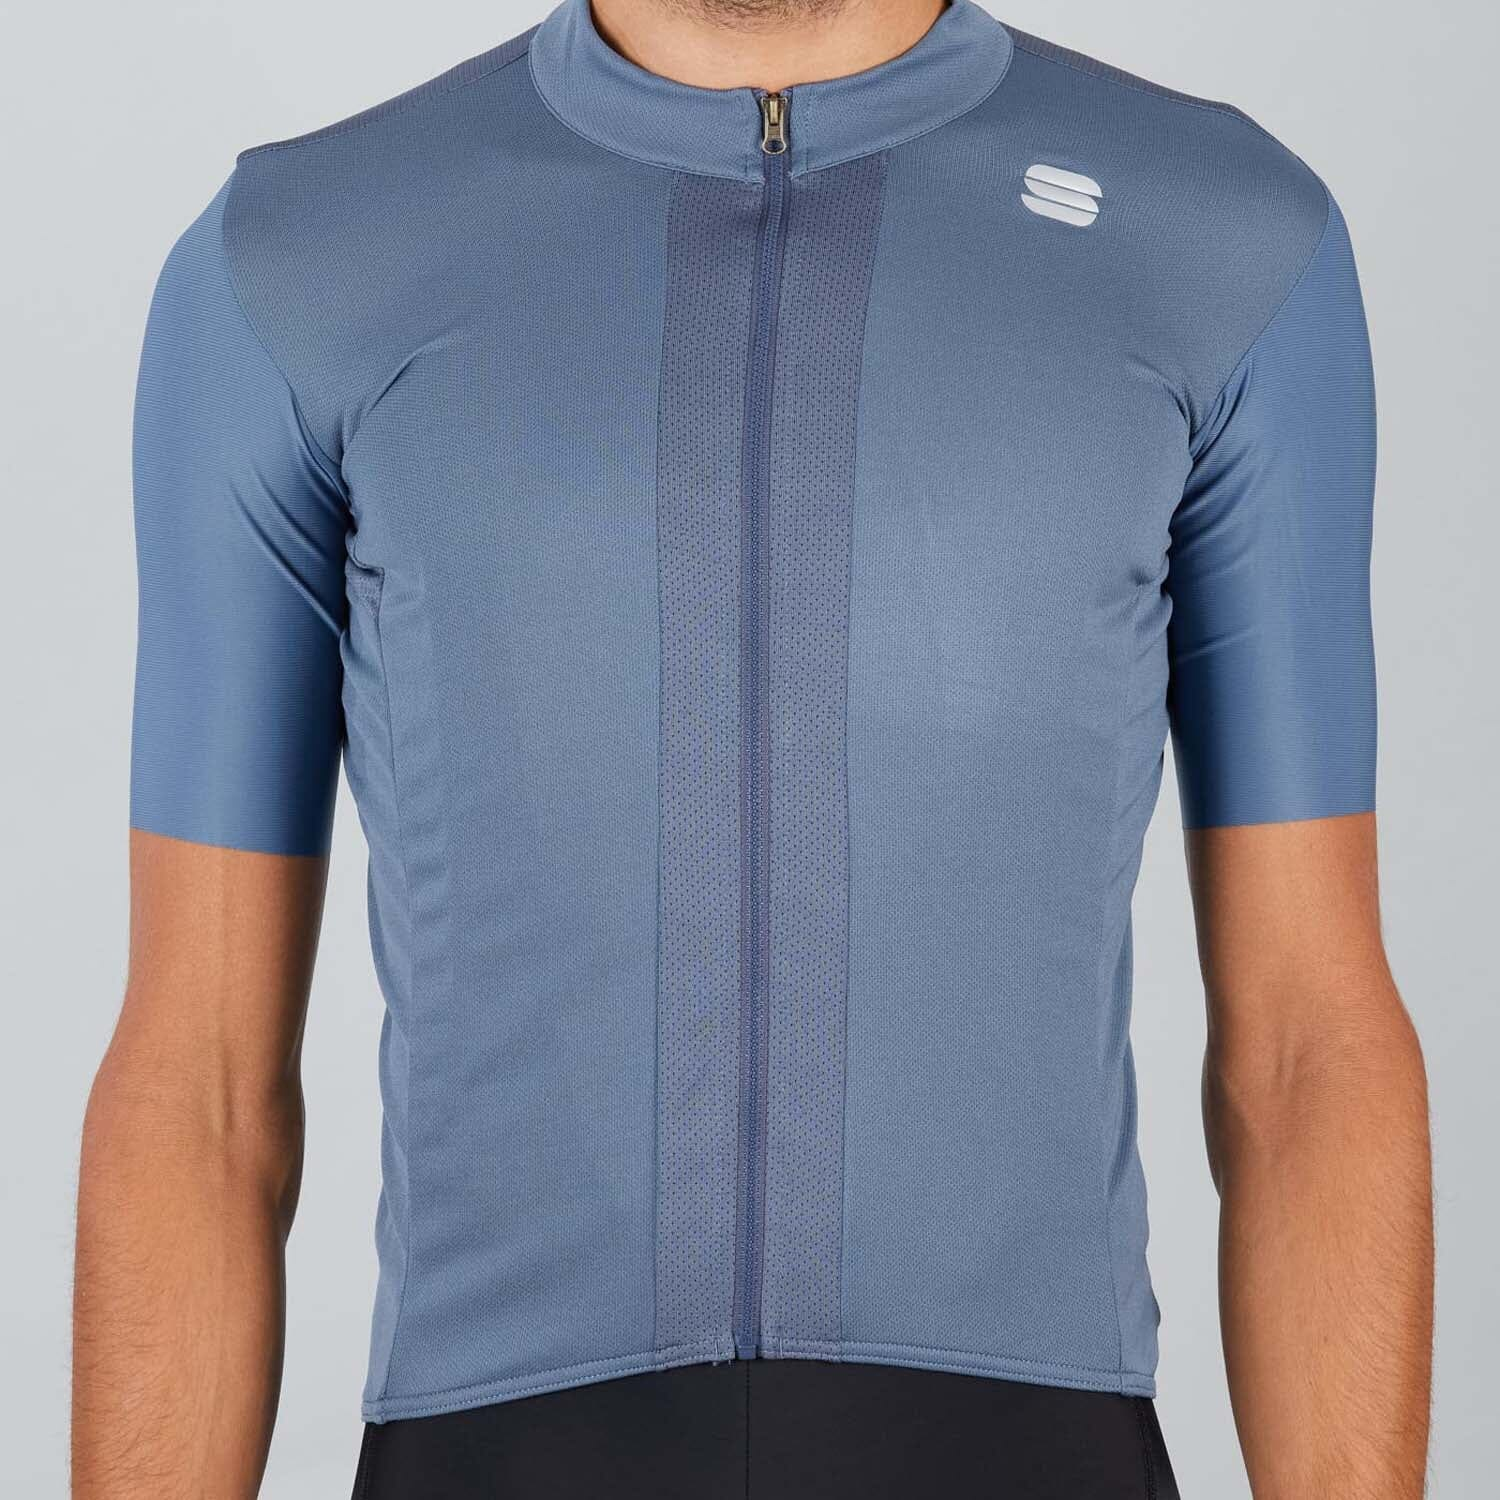 Sportful-Sportful Strike Jersey-Blue Sea/Black-XS-SF200124351-saddleback-elite-performance-cycling